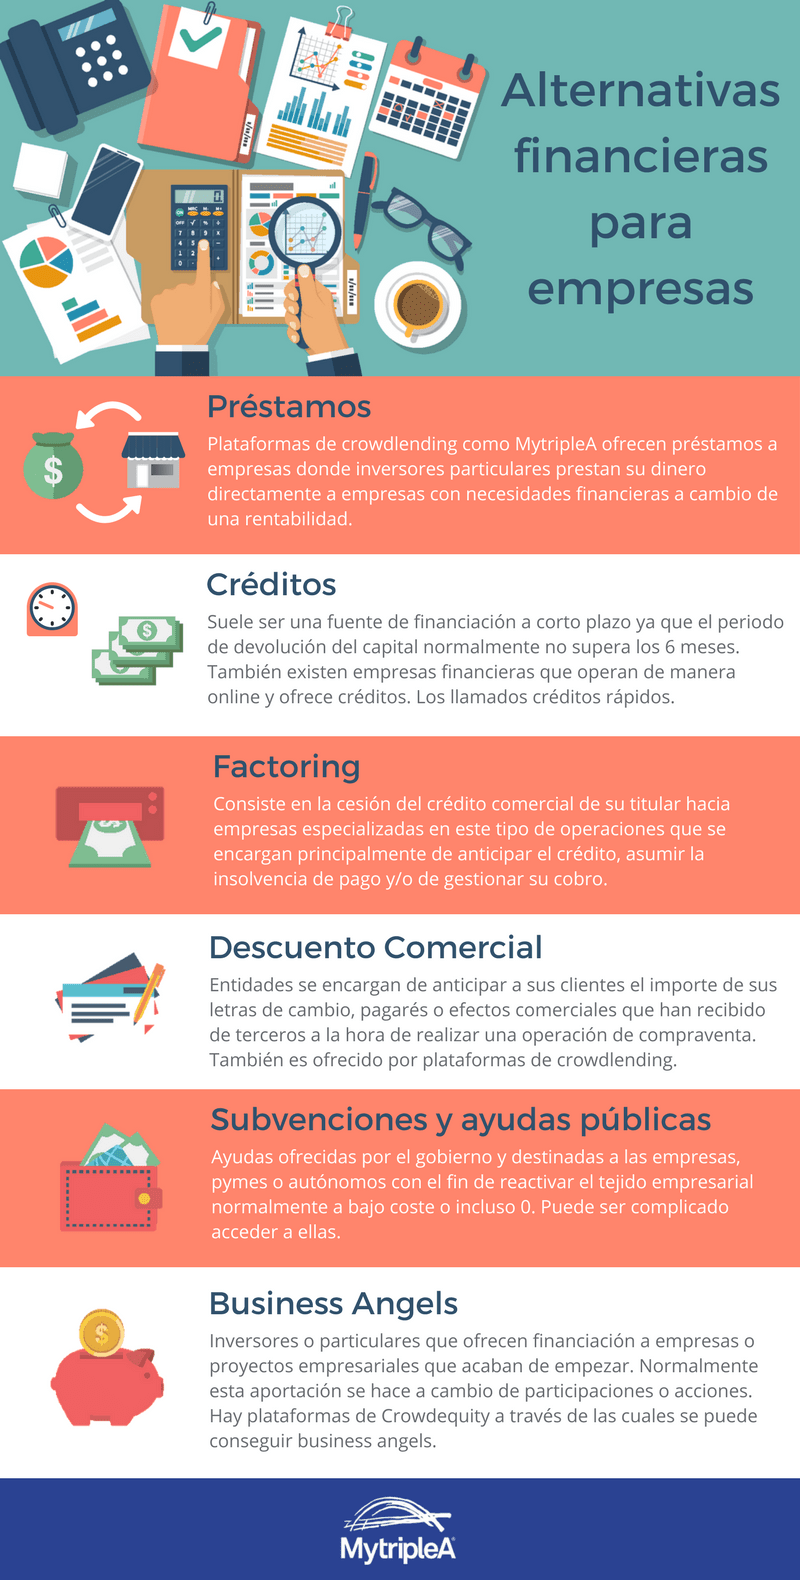 Infografía Alternativas financieras y de financiación para empresas